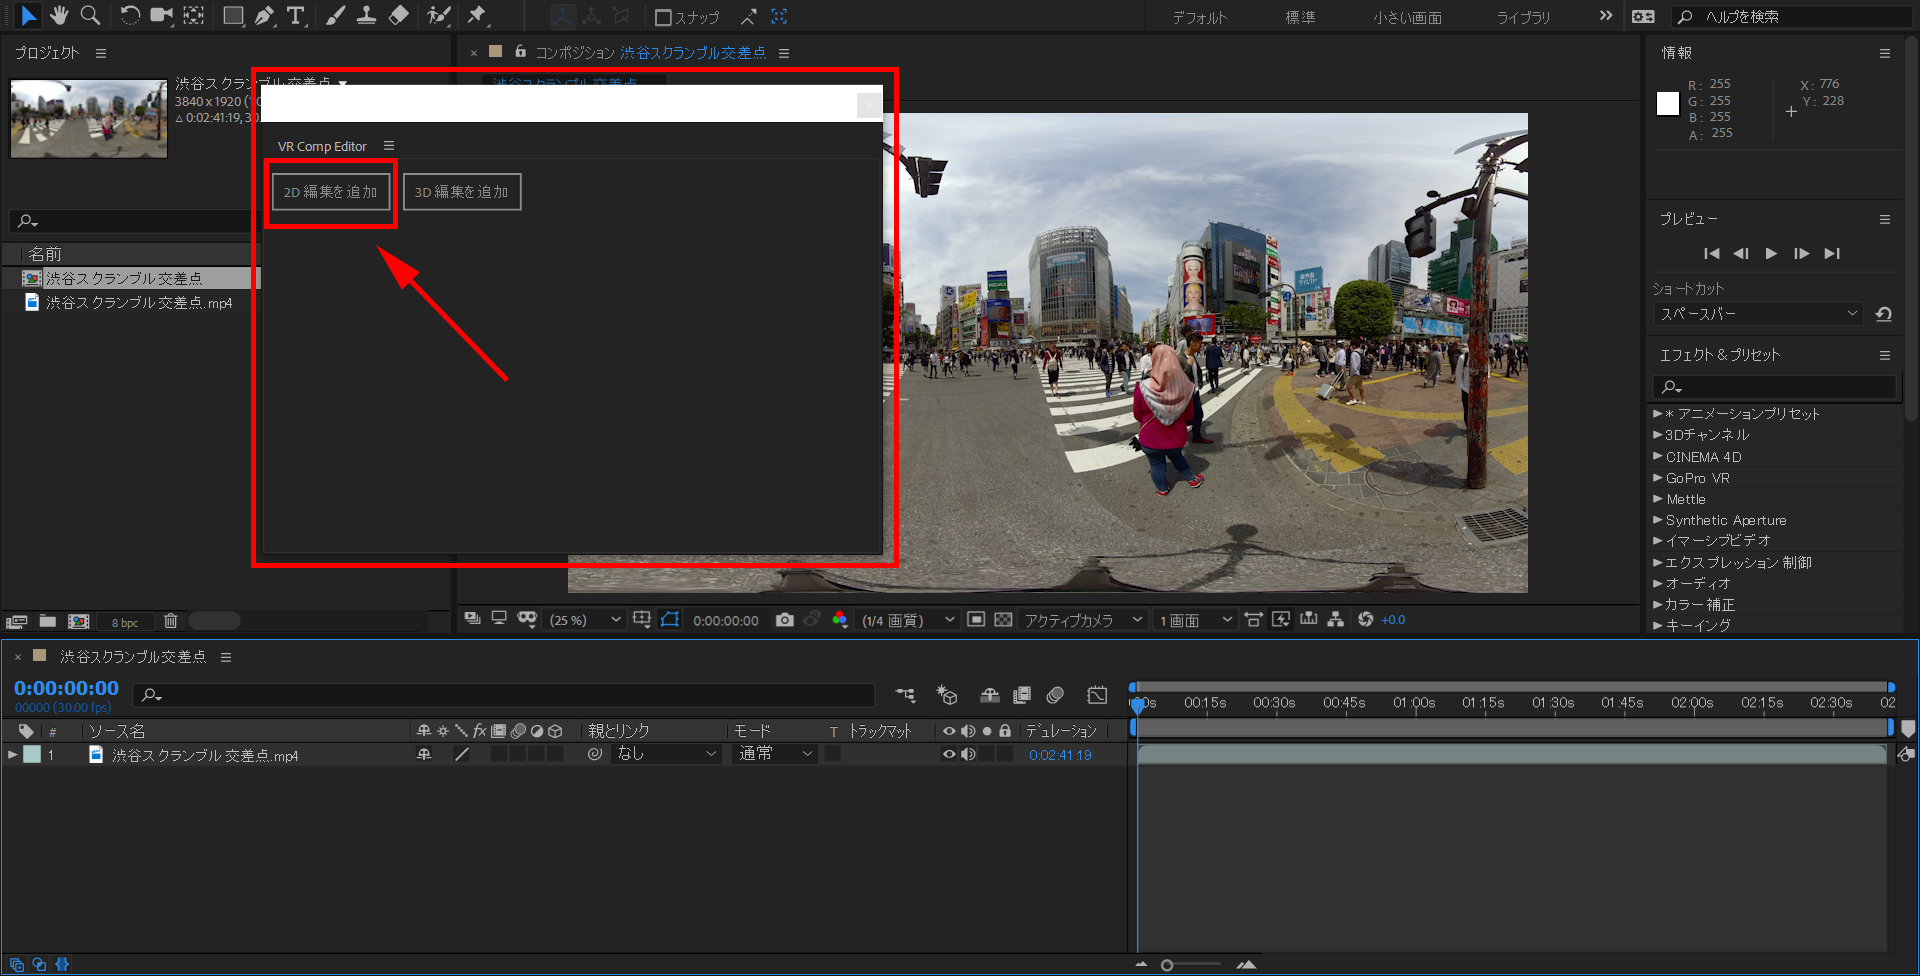 Adobe After Effects _VR Comp Editor2